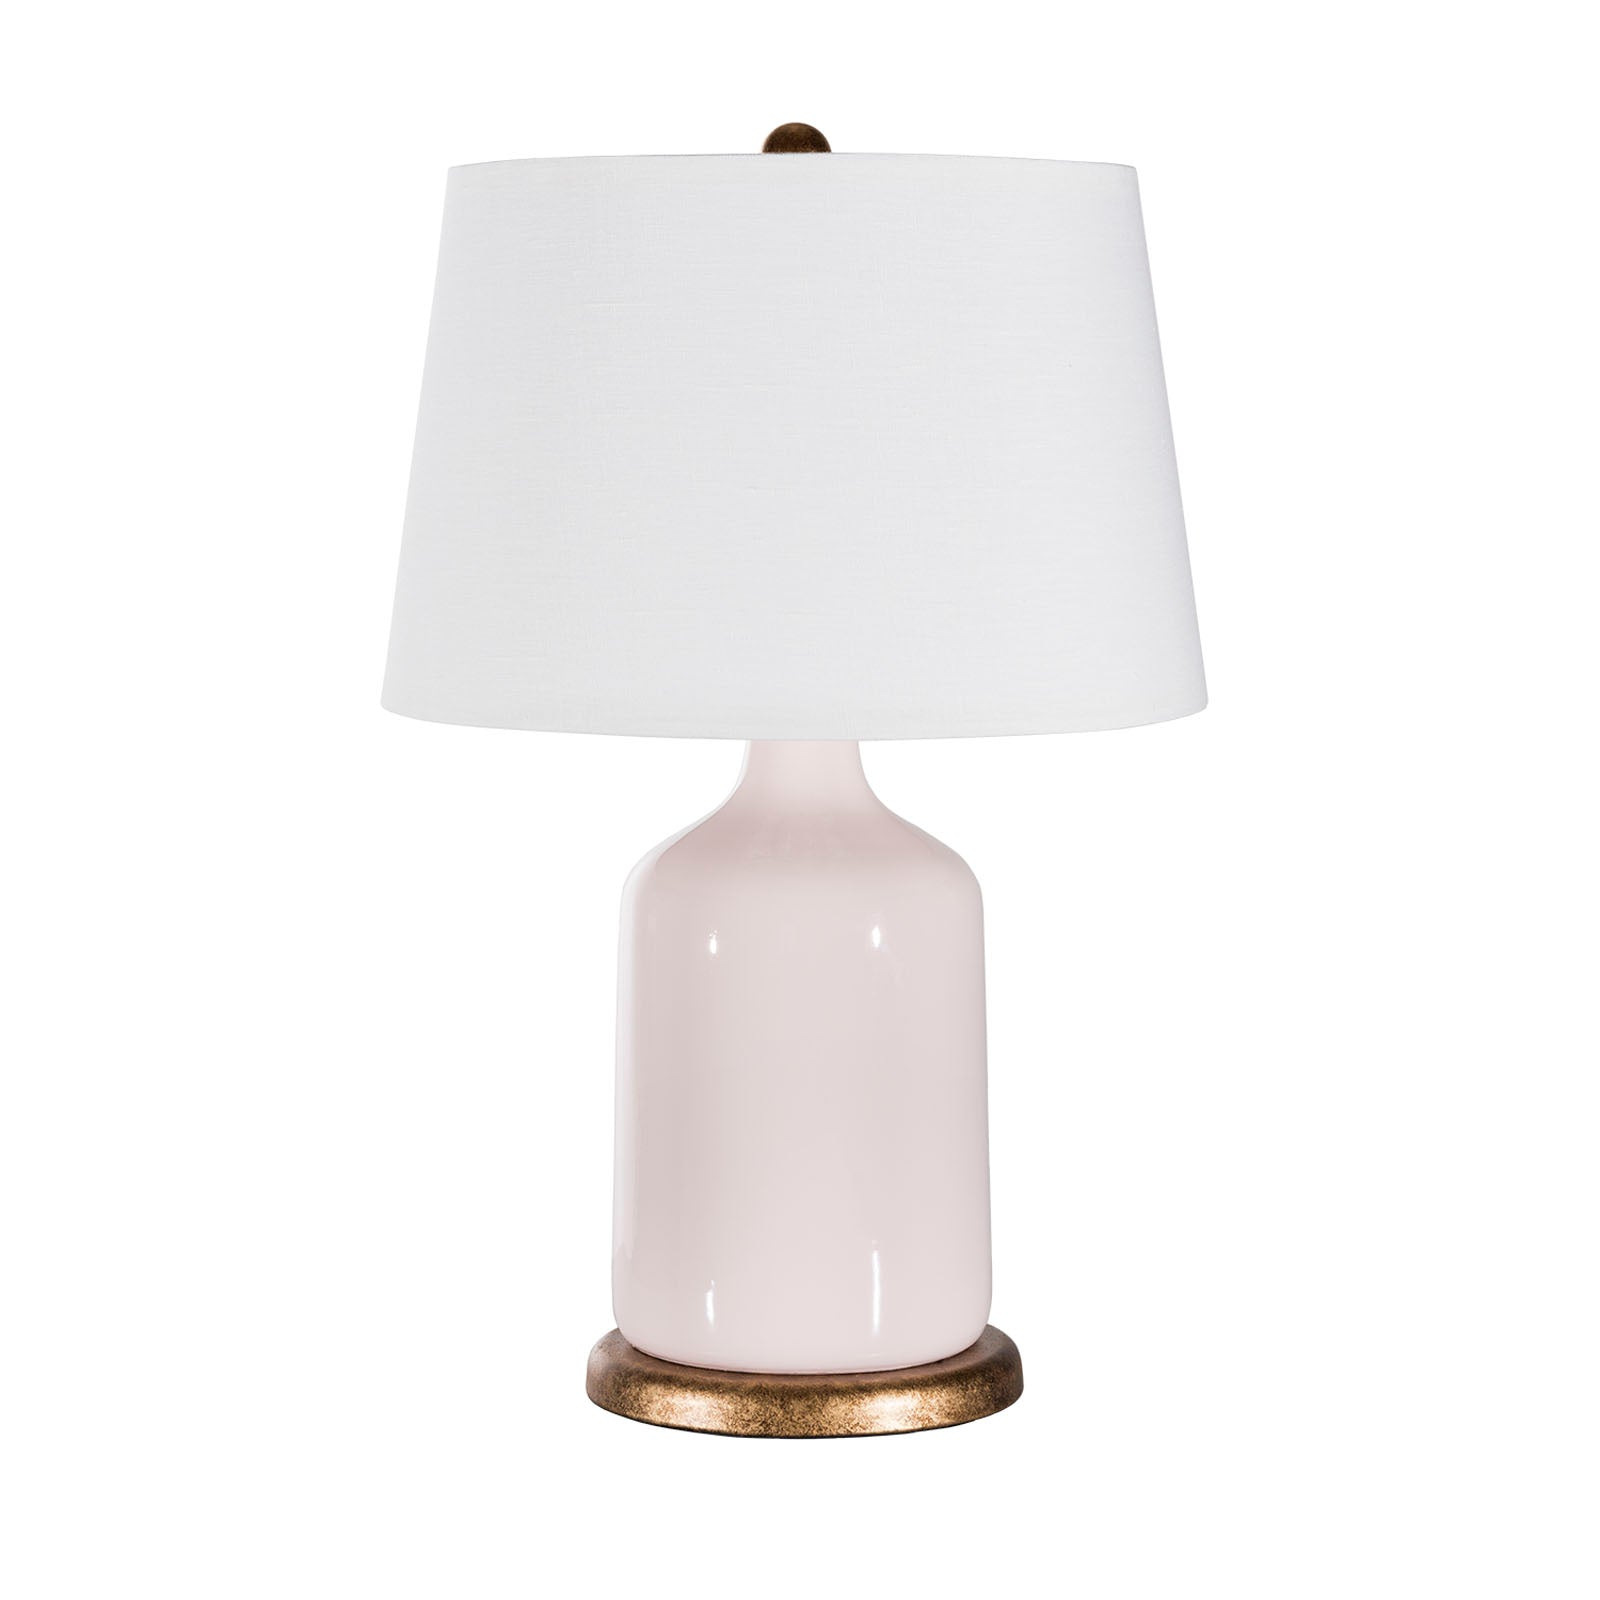 Isabelle Lamp in Blush